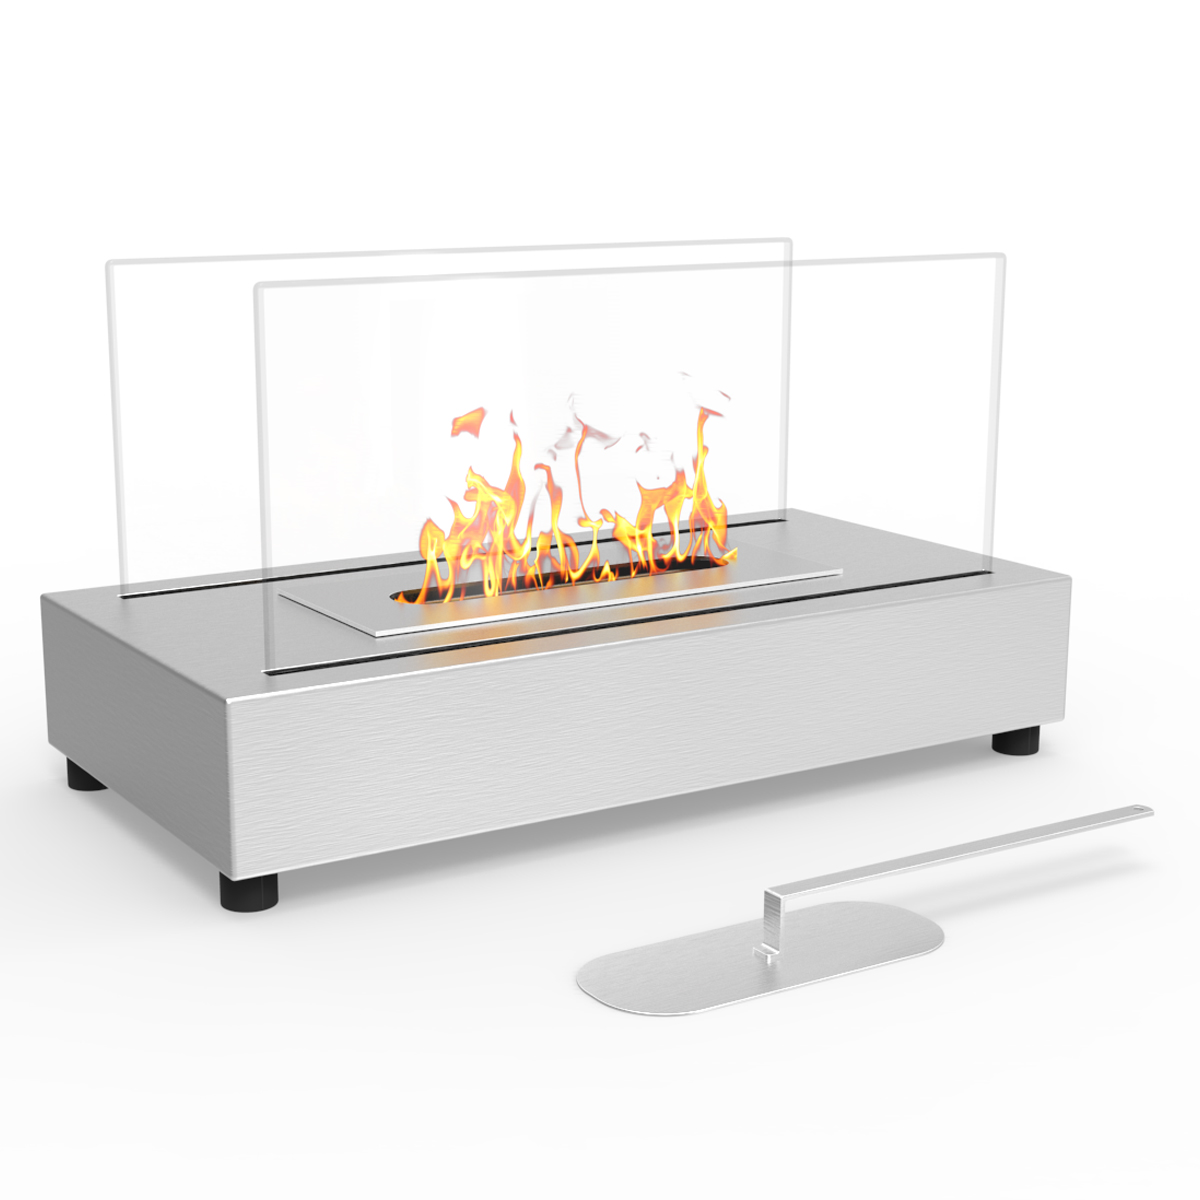 Regal flame avon table top indoor outdoor ethanol fireplace white regal flame avon table top indoor outdoor ethanol fireplace stainless steel geotapseo Image collections